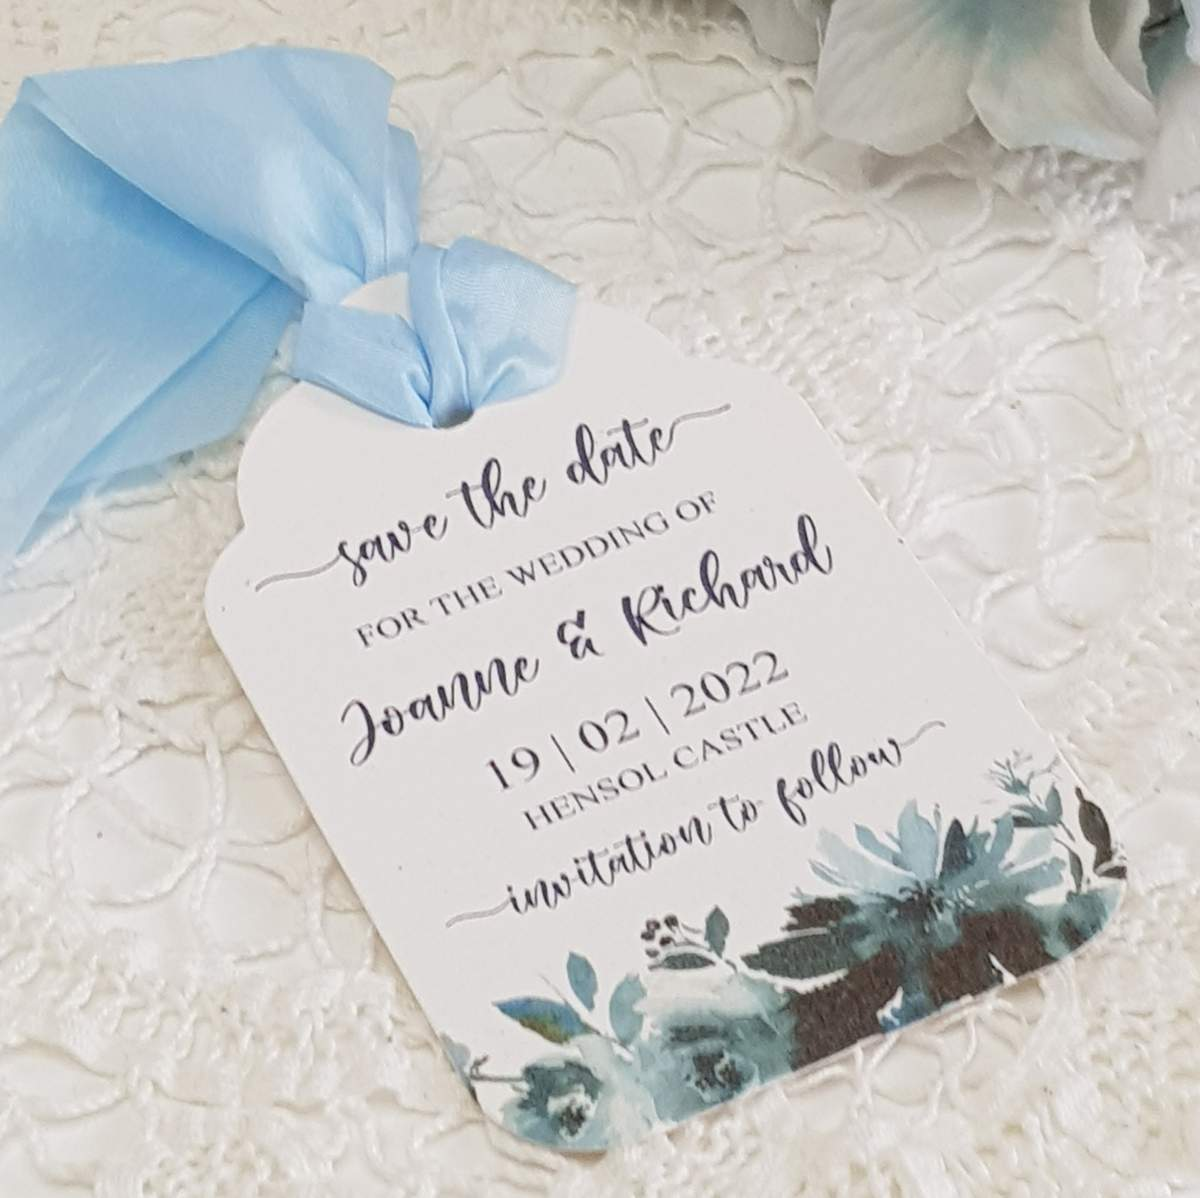 luggage tag style save the date card with a navy floral design and pale blue silk ribbon